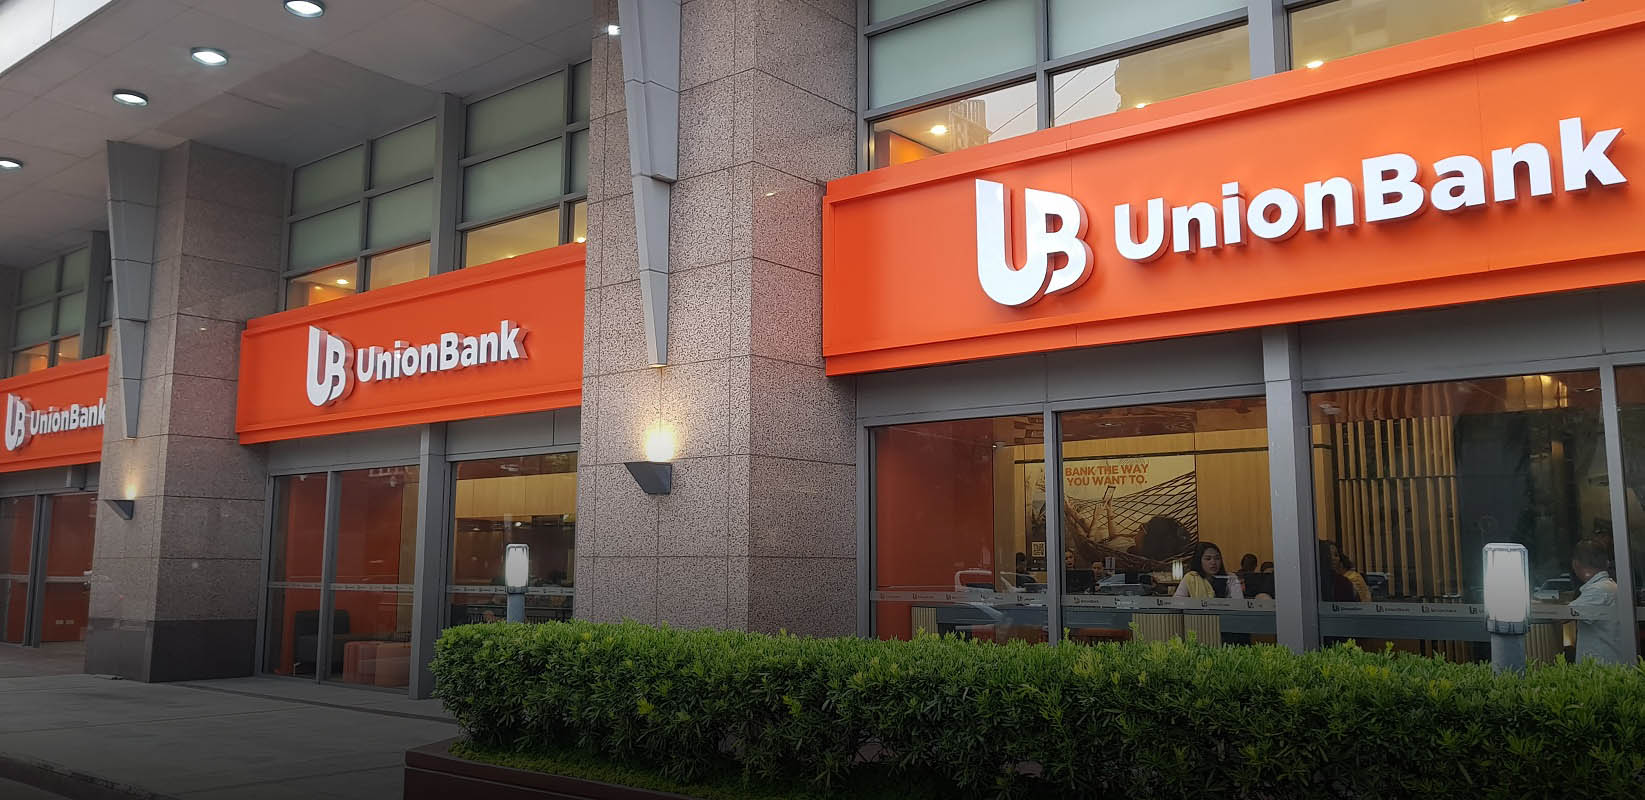 Philippines' Union Bank rolls out stablecoin as part of blockchain push